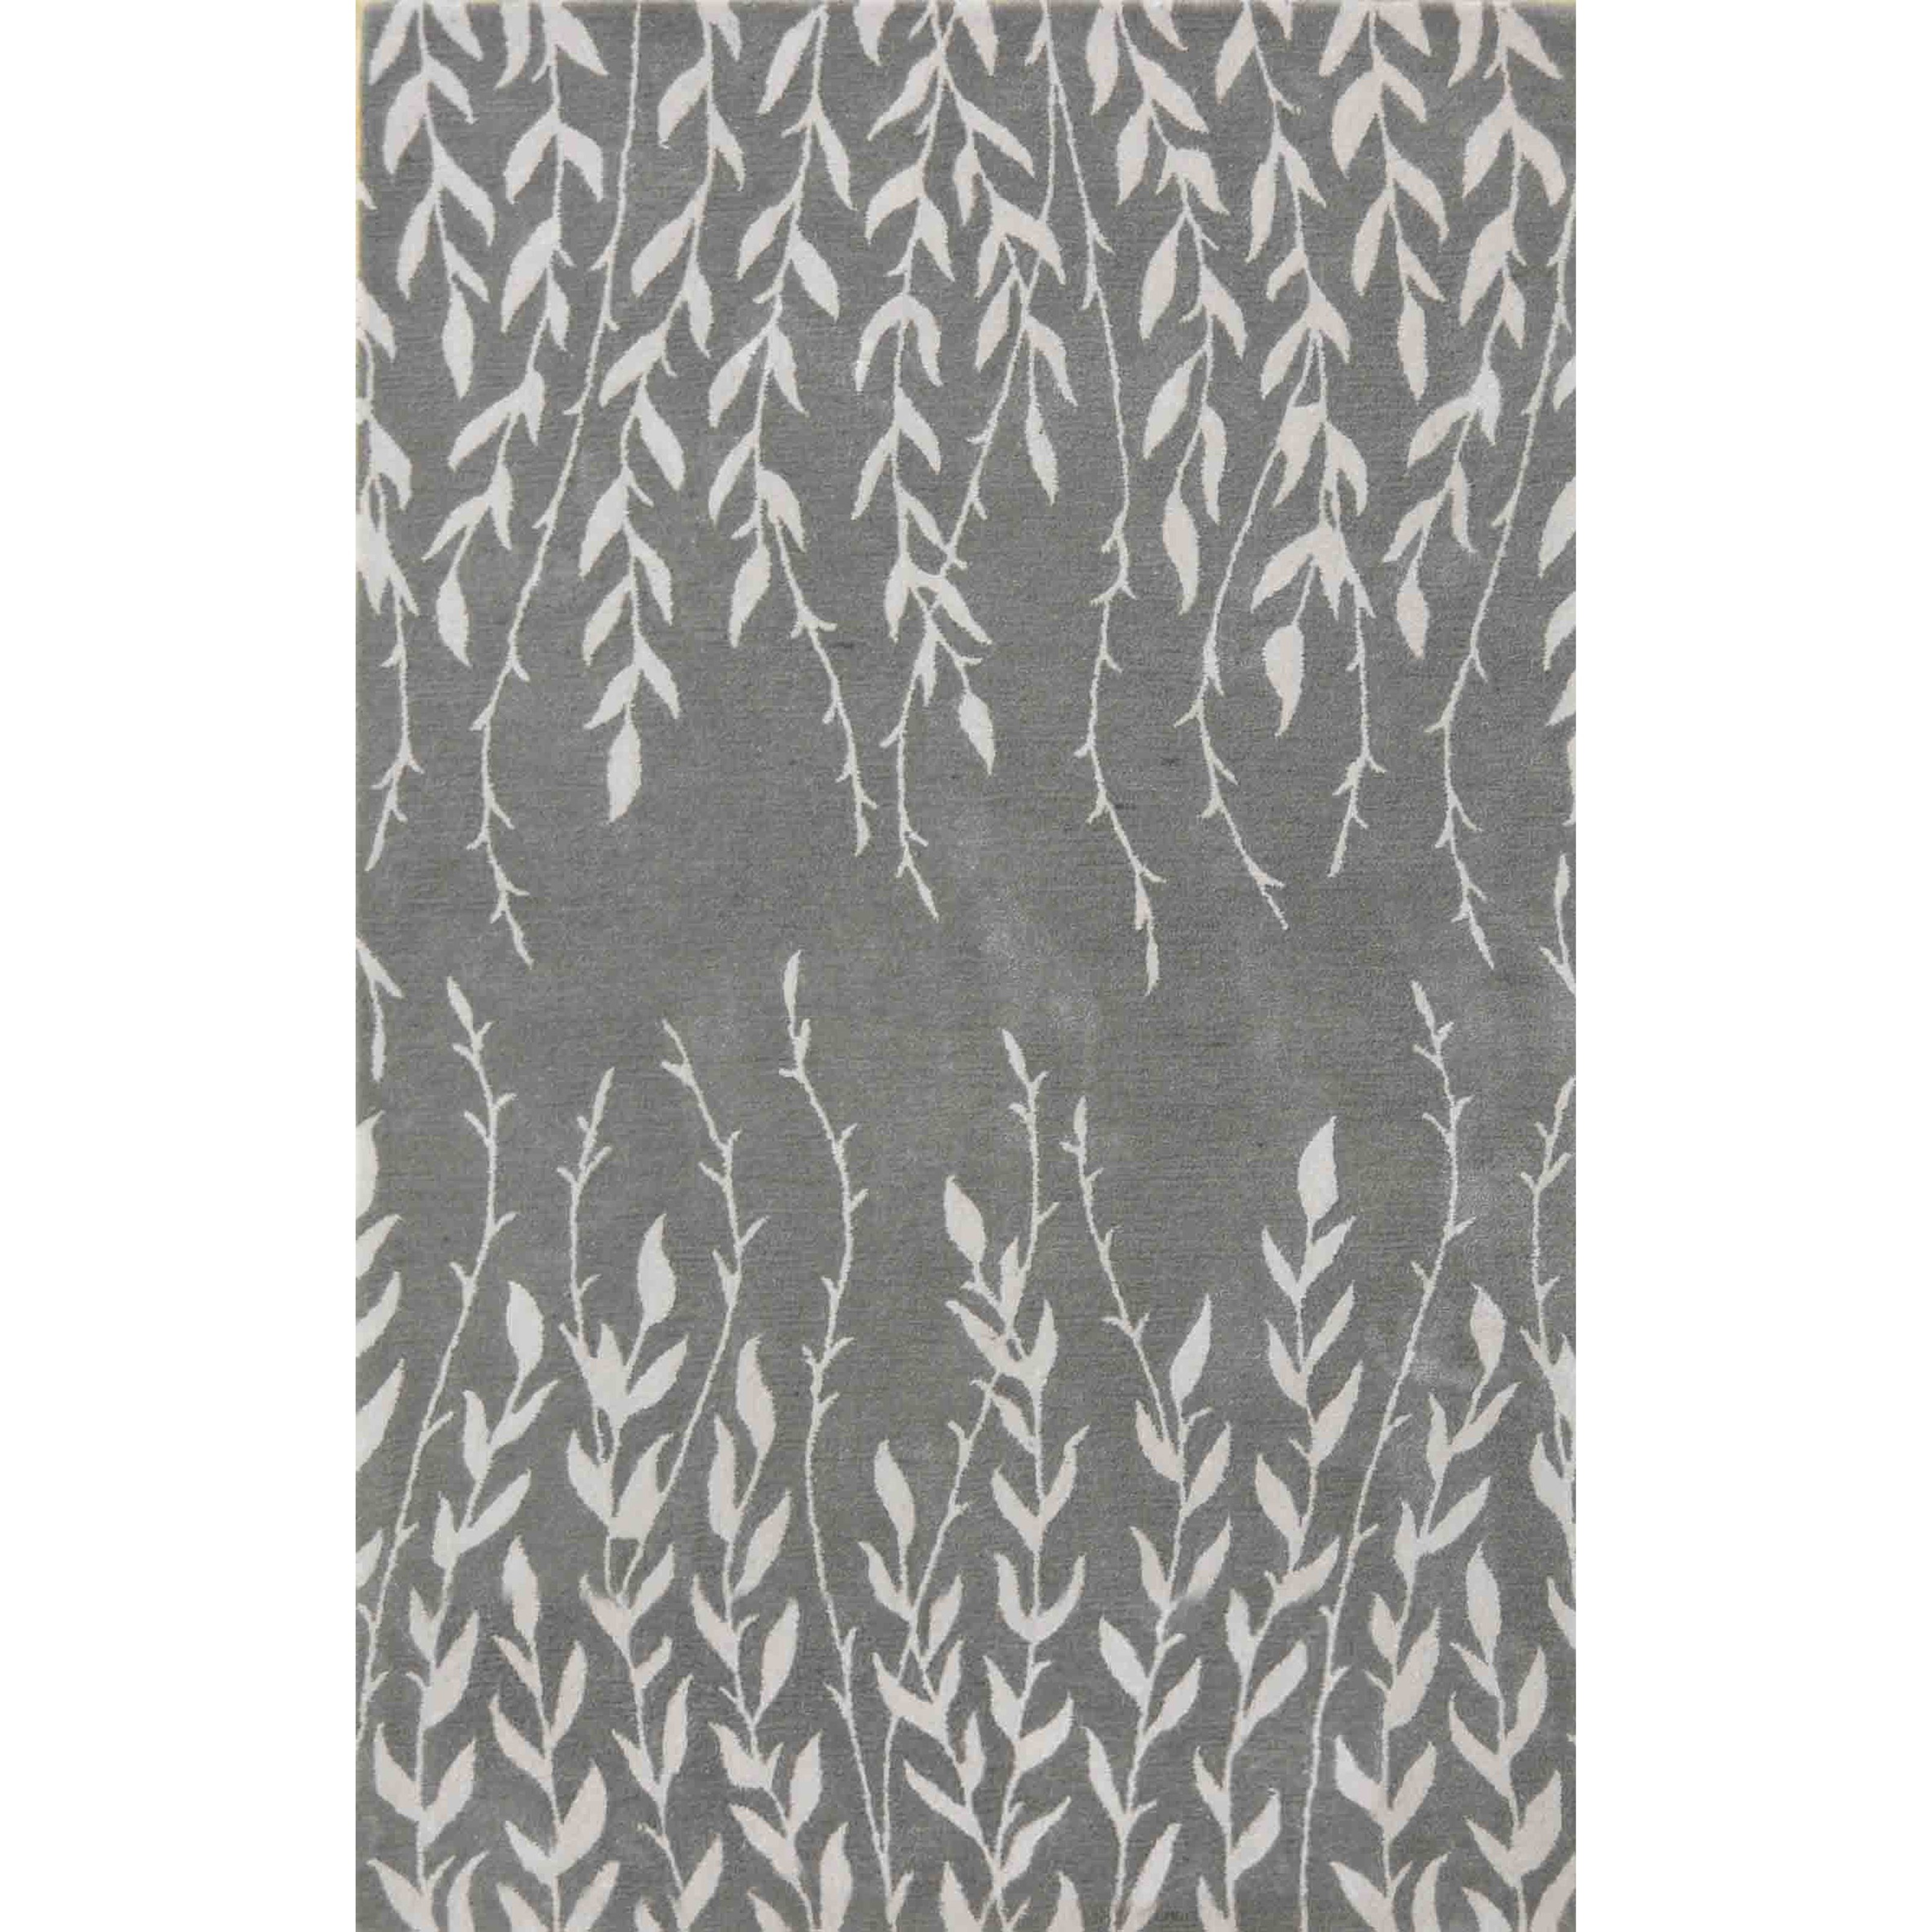 8' X 11' Silver Tranquility Area Rug